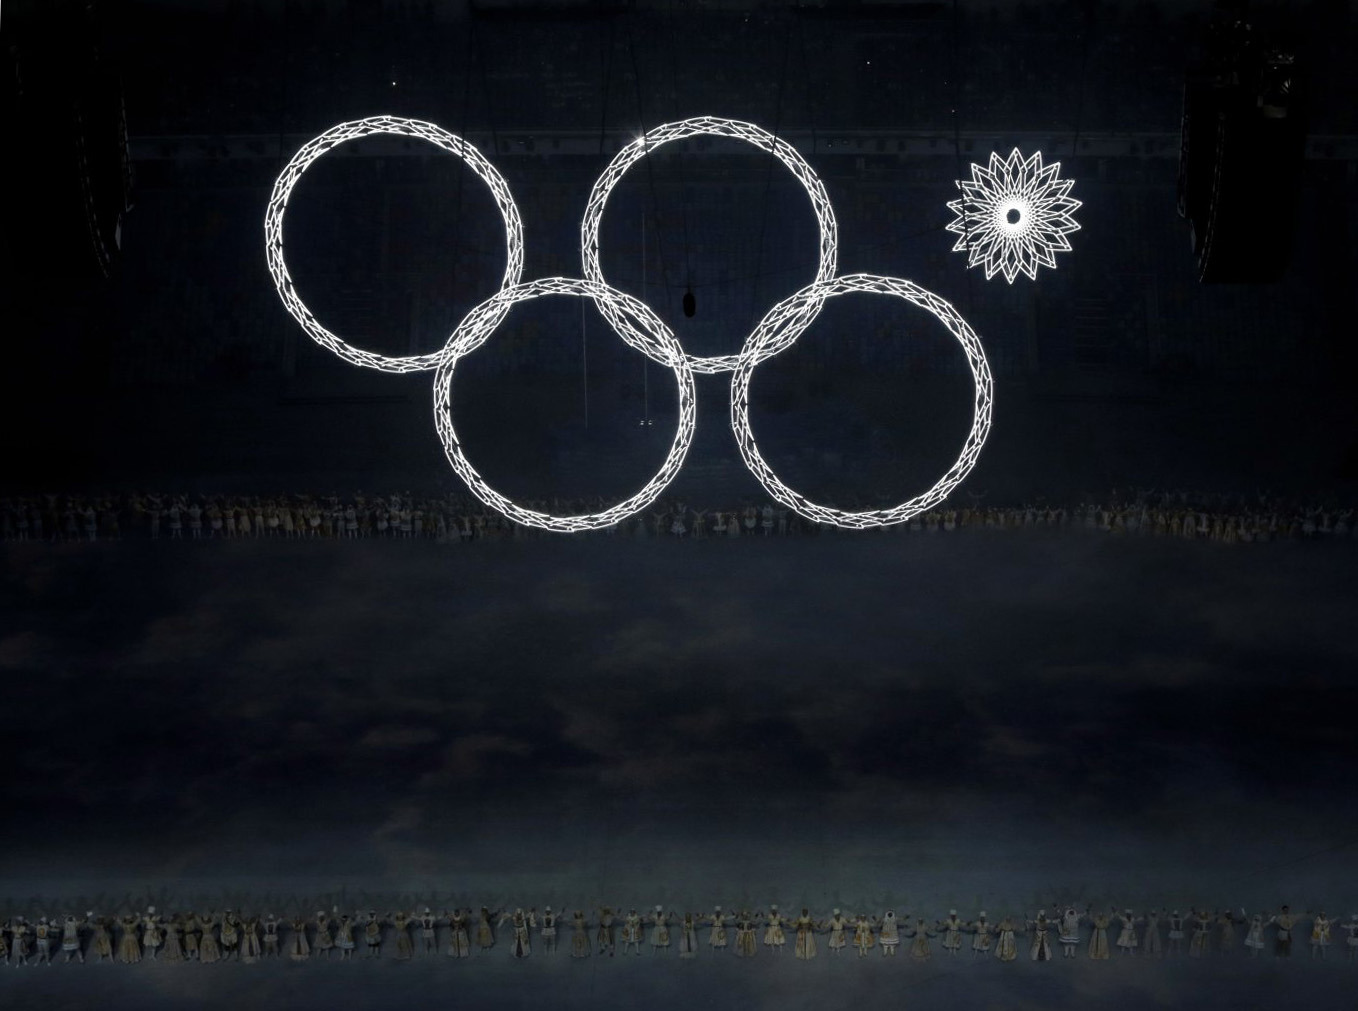 One of the Olympic rings fails to open during the opening ceremony.